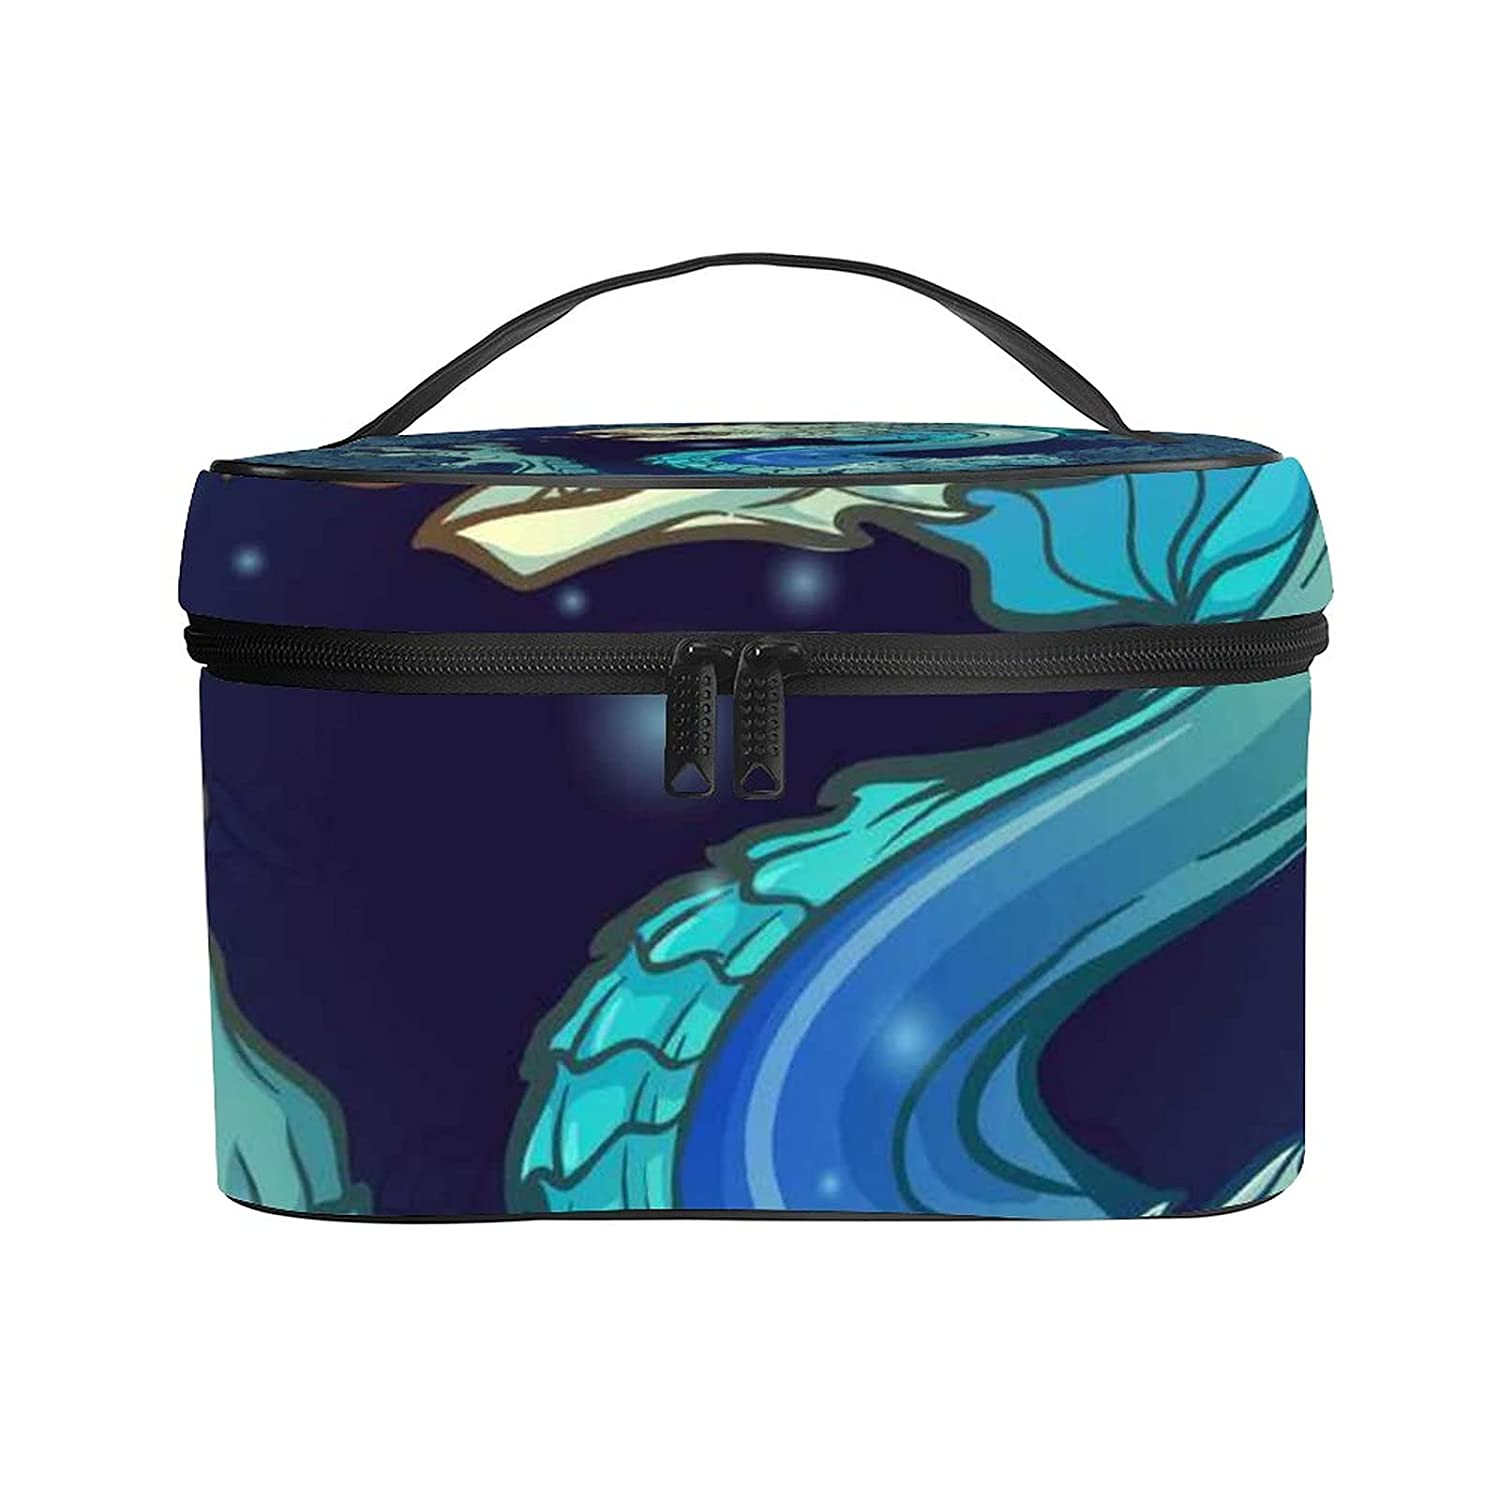 Makeup Bag Dragon Head Forest Cosmetic Large Org Max 85% OFF Case Travel New Free Shipping